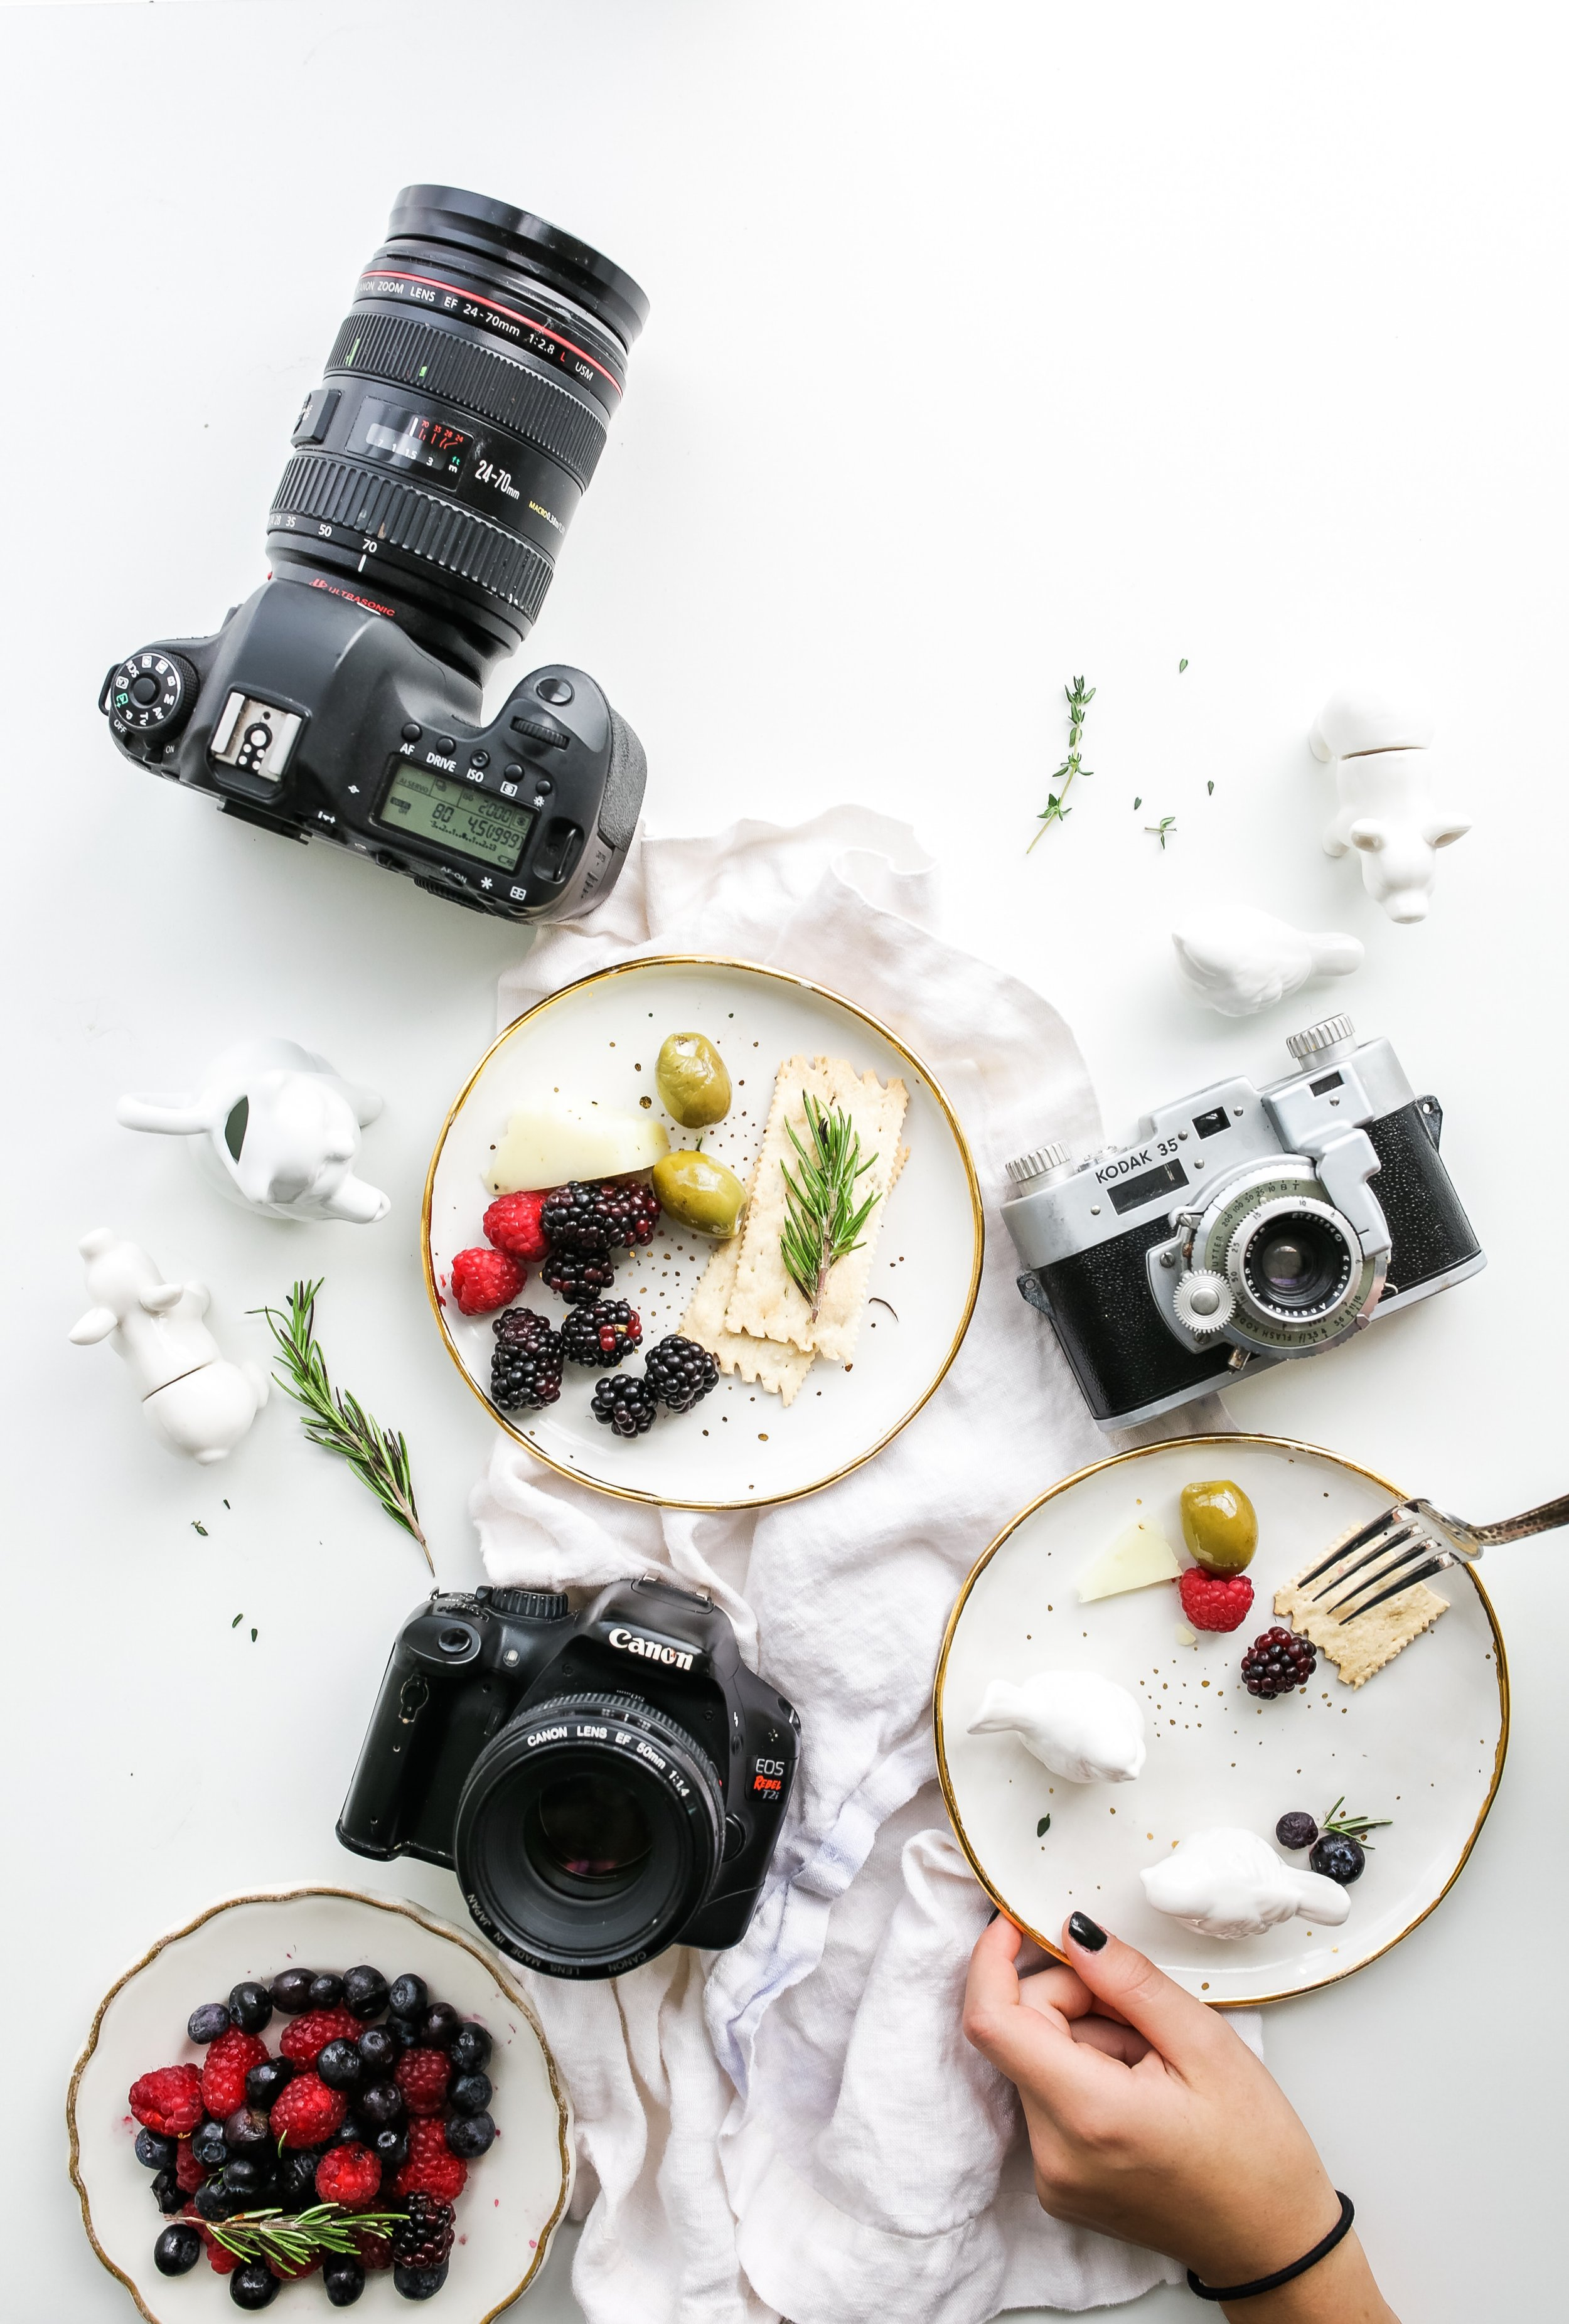 About Culinary Clicks Food Blogger, Photographer, and Influencer Events